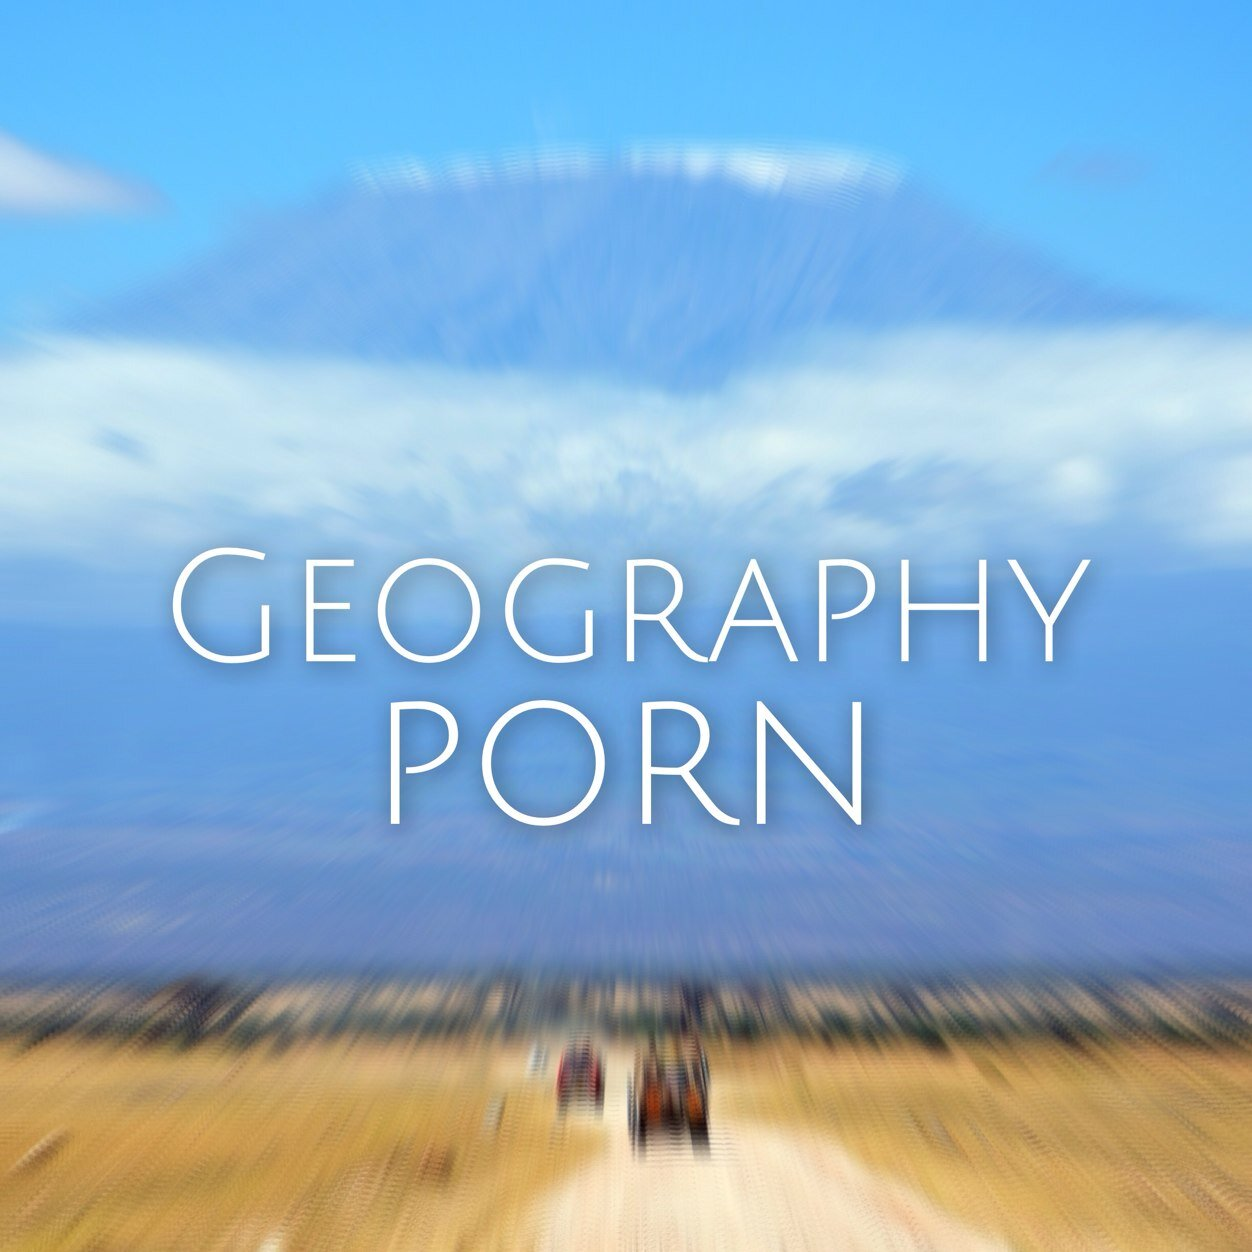 Showing Porn Images For Gayography Porn